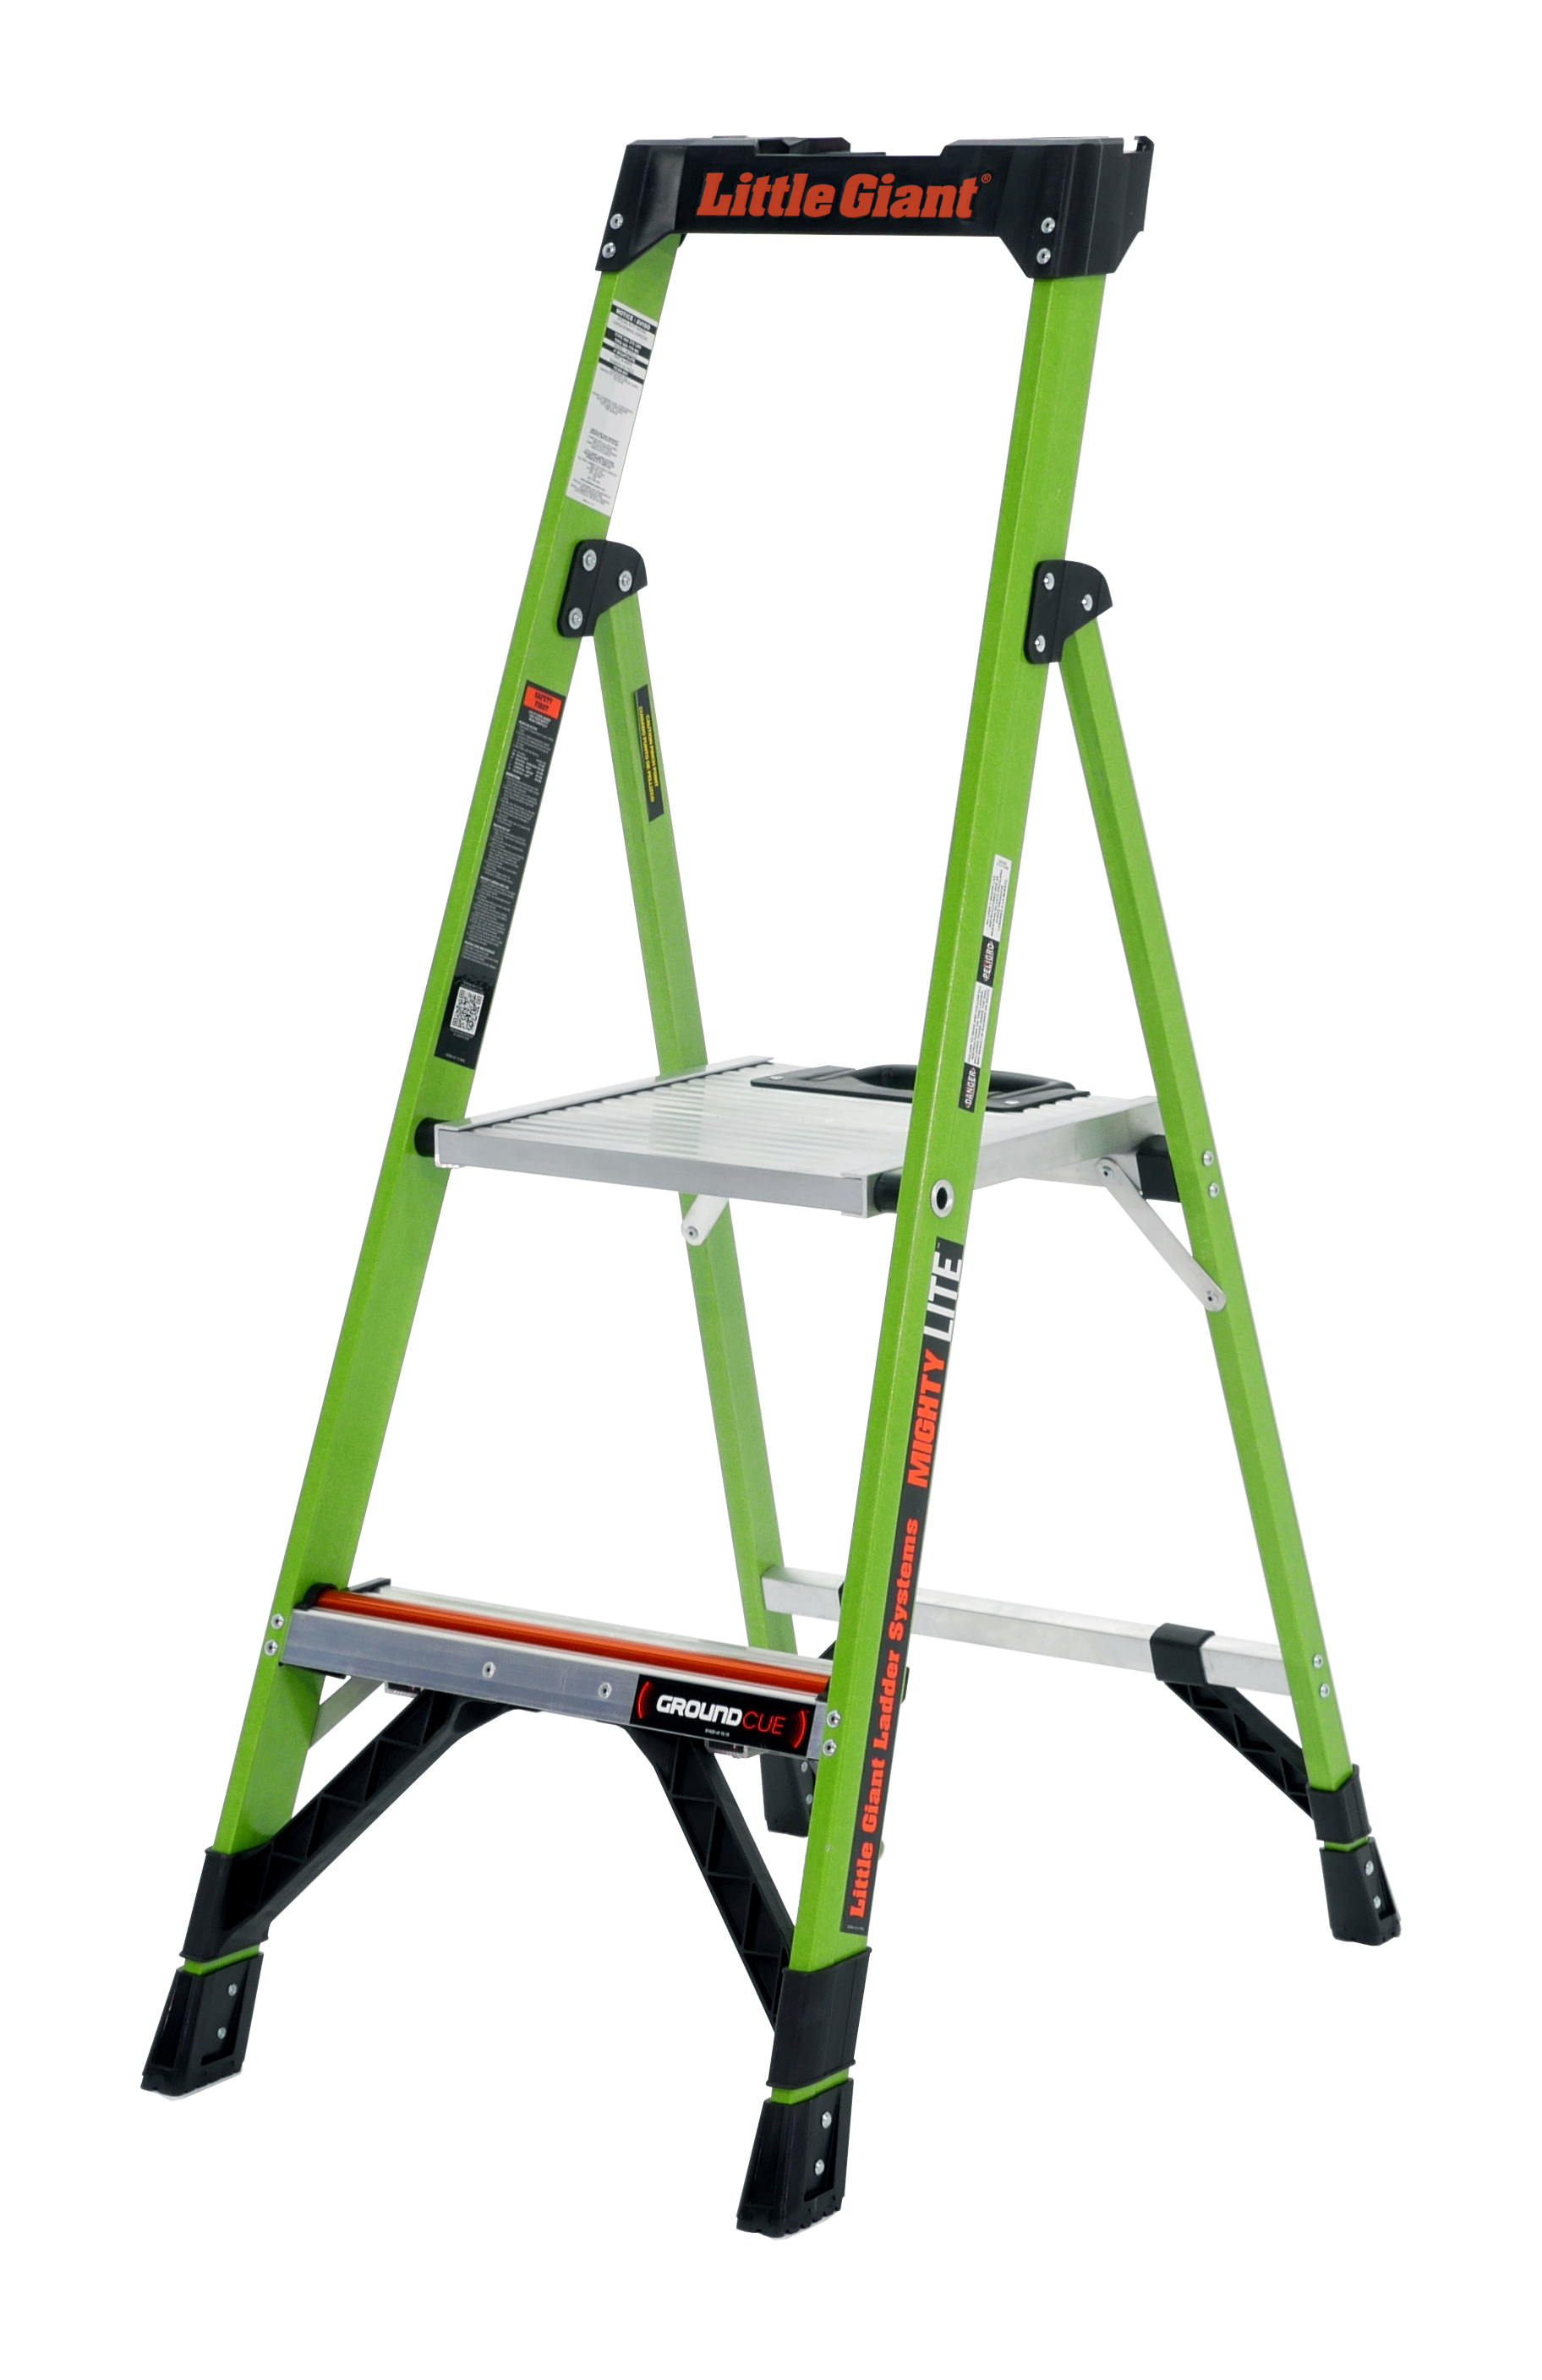 Little Giant MightyLite, Model 4', Type IA 300 lbs rated, fiberglass stepladder by Wing Enterprises, Inc.